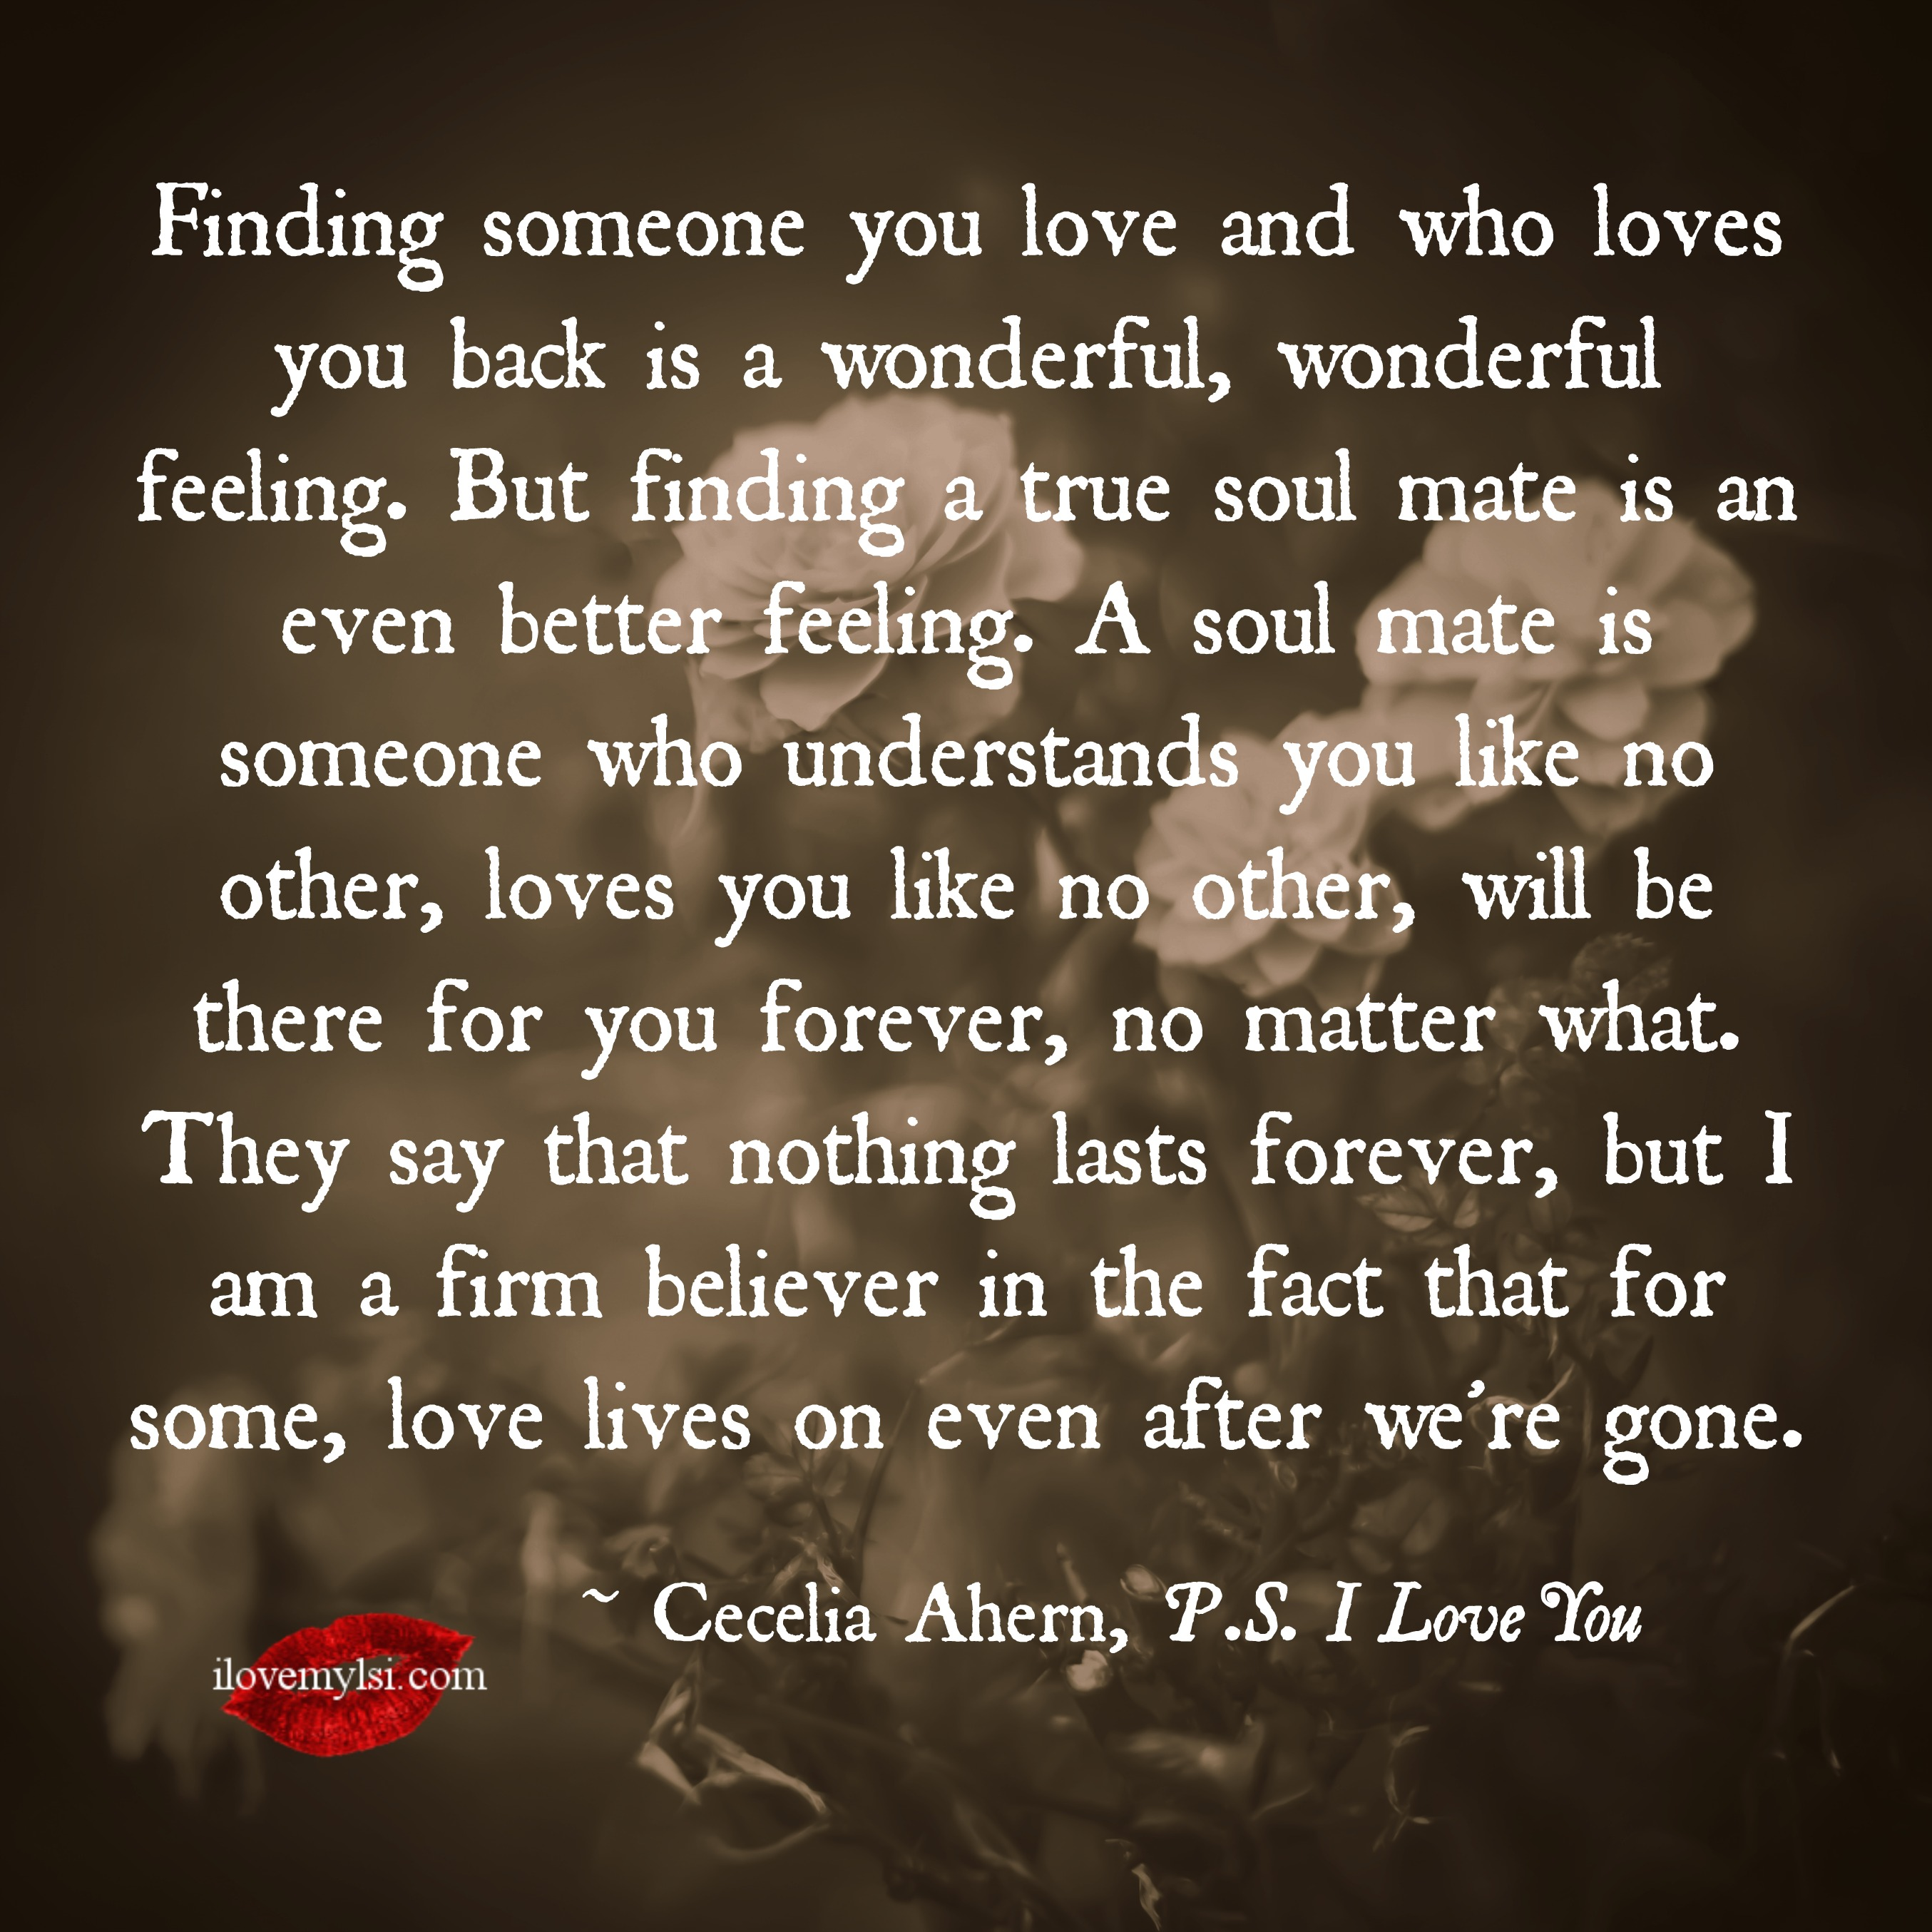 finding true love quotes poems Love quotes, nothing but love quotes love quotes on beauty, broken hearts, falling in love, fear, fun, kissing, true love, and more i decided to put together a collection of love quotes for your browsing pleasure i reached far and wide across songs, movies, and famous people to find some of the best love quotes available.